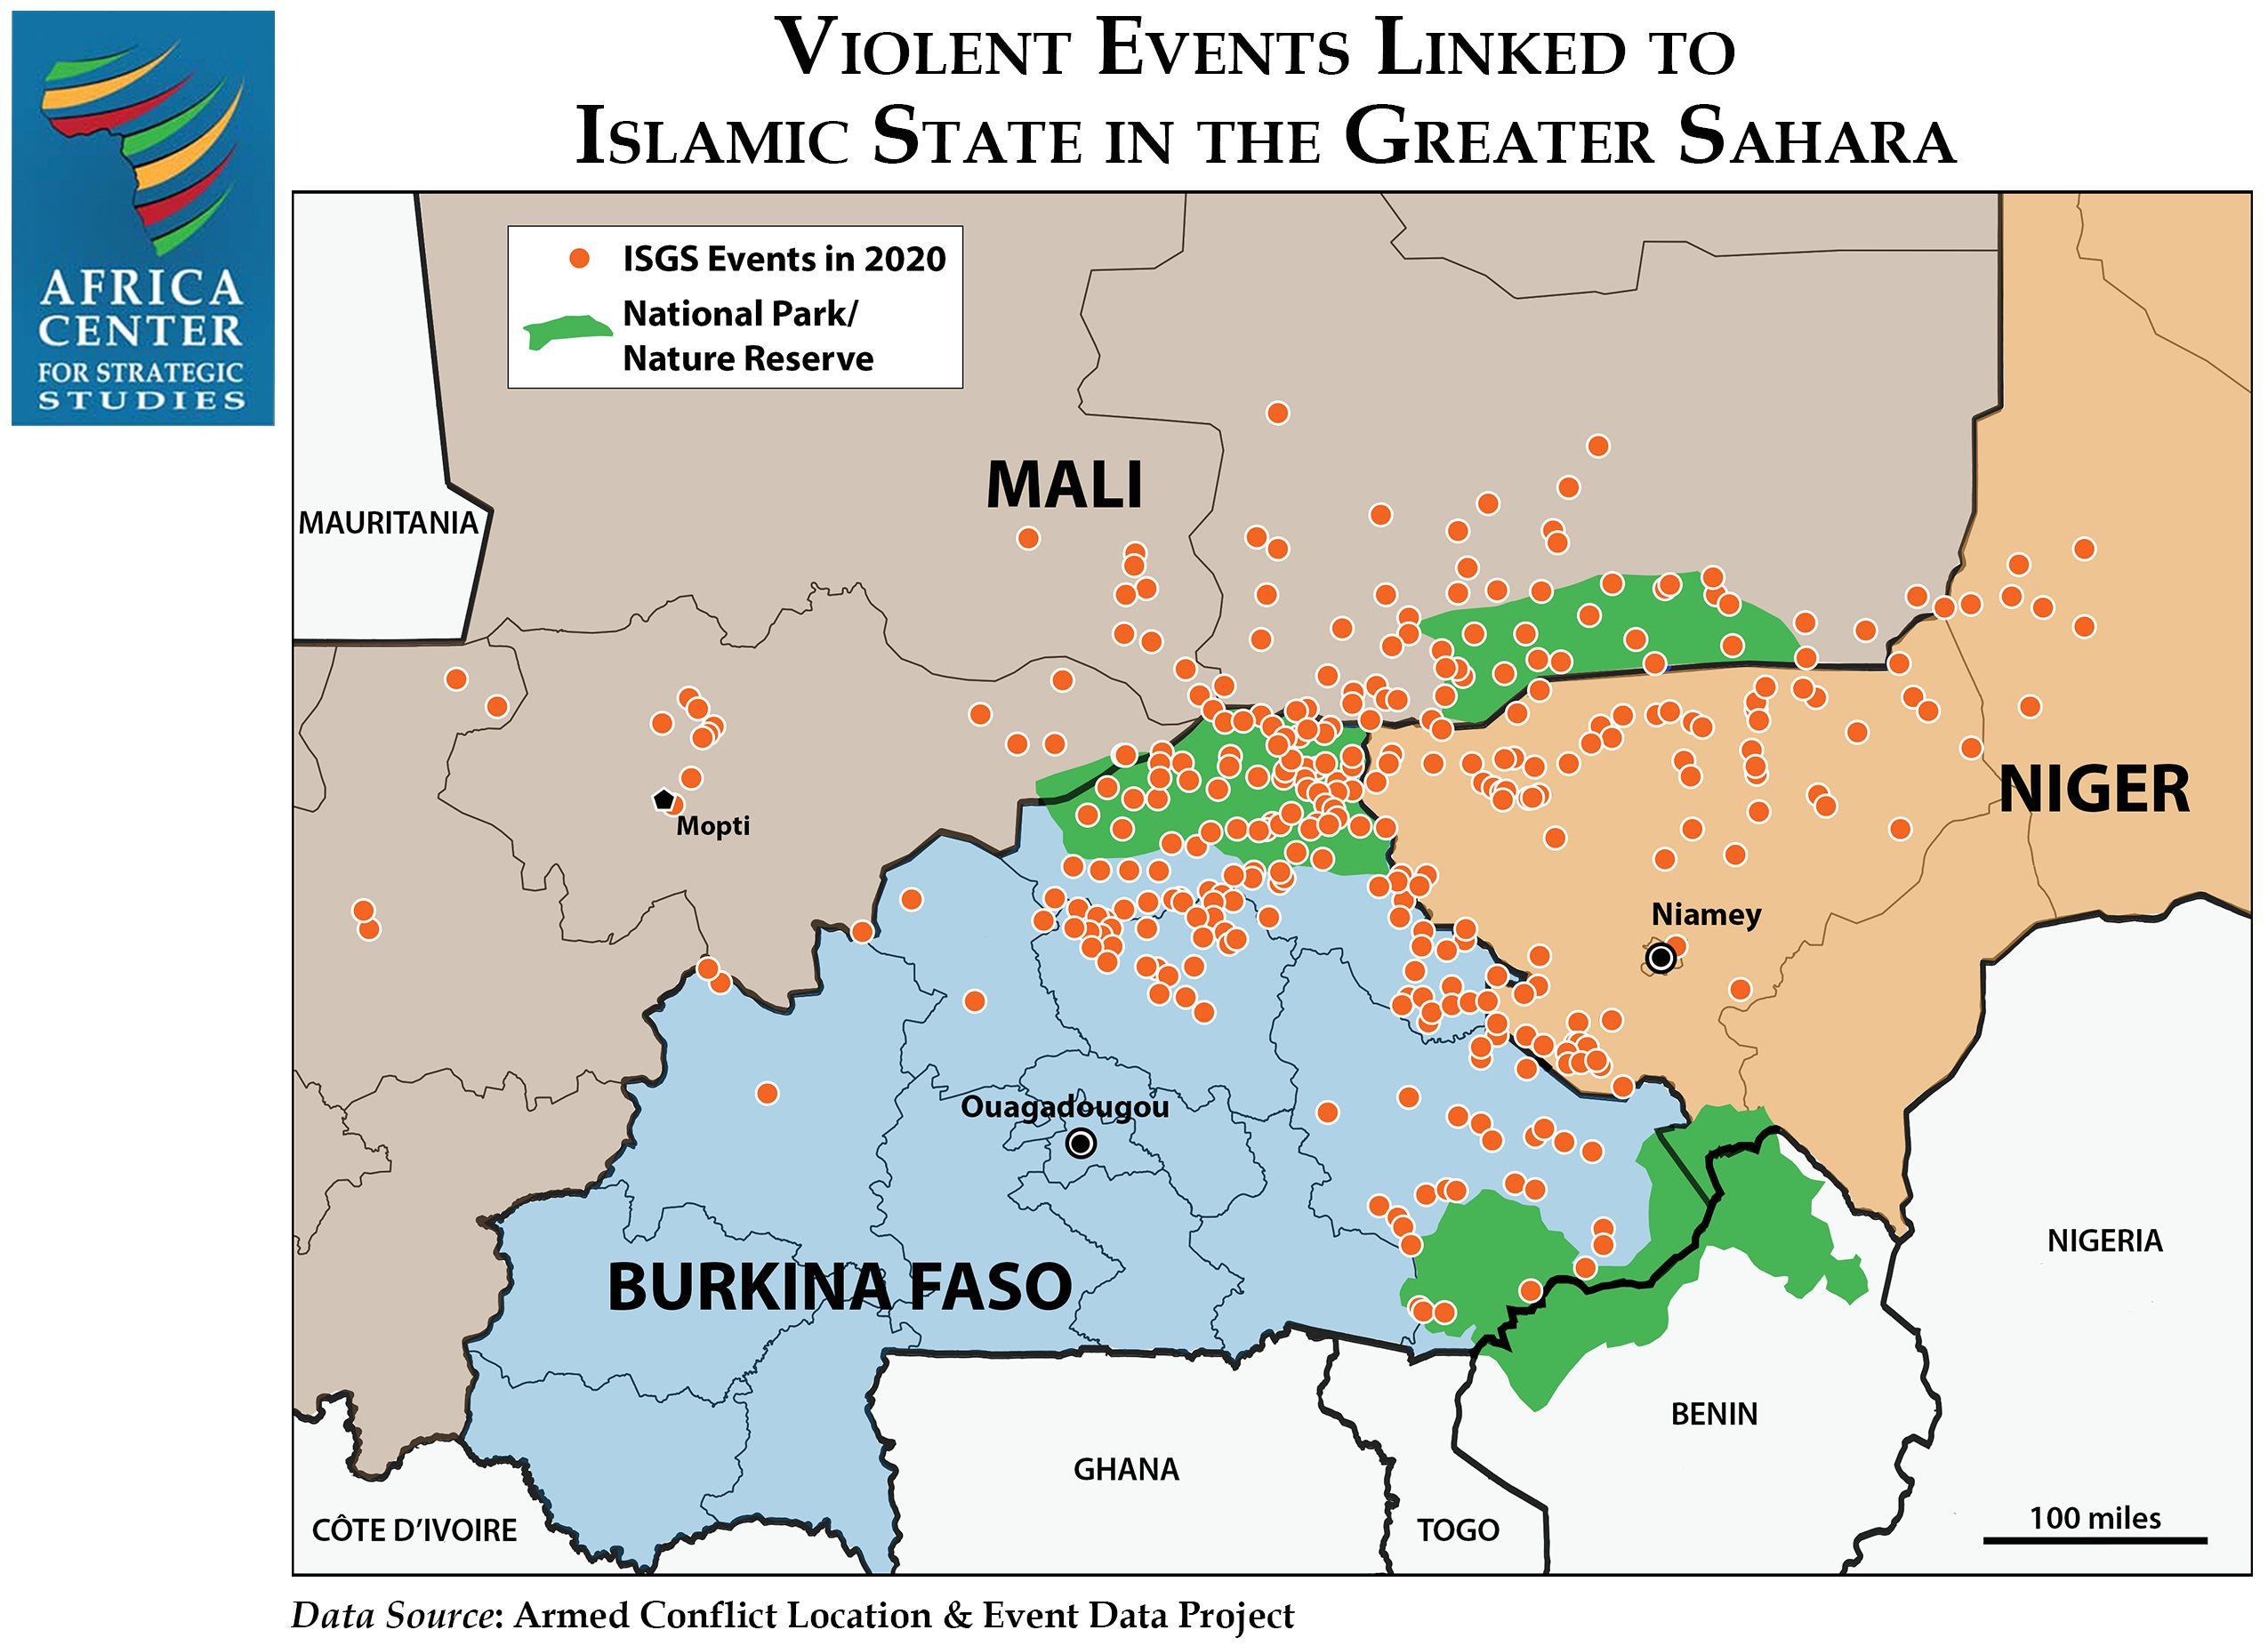 Violent Events Linked to ISGS